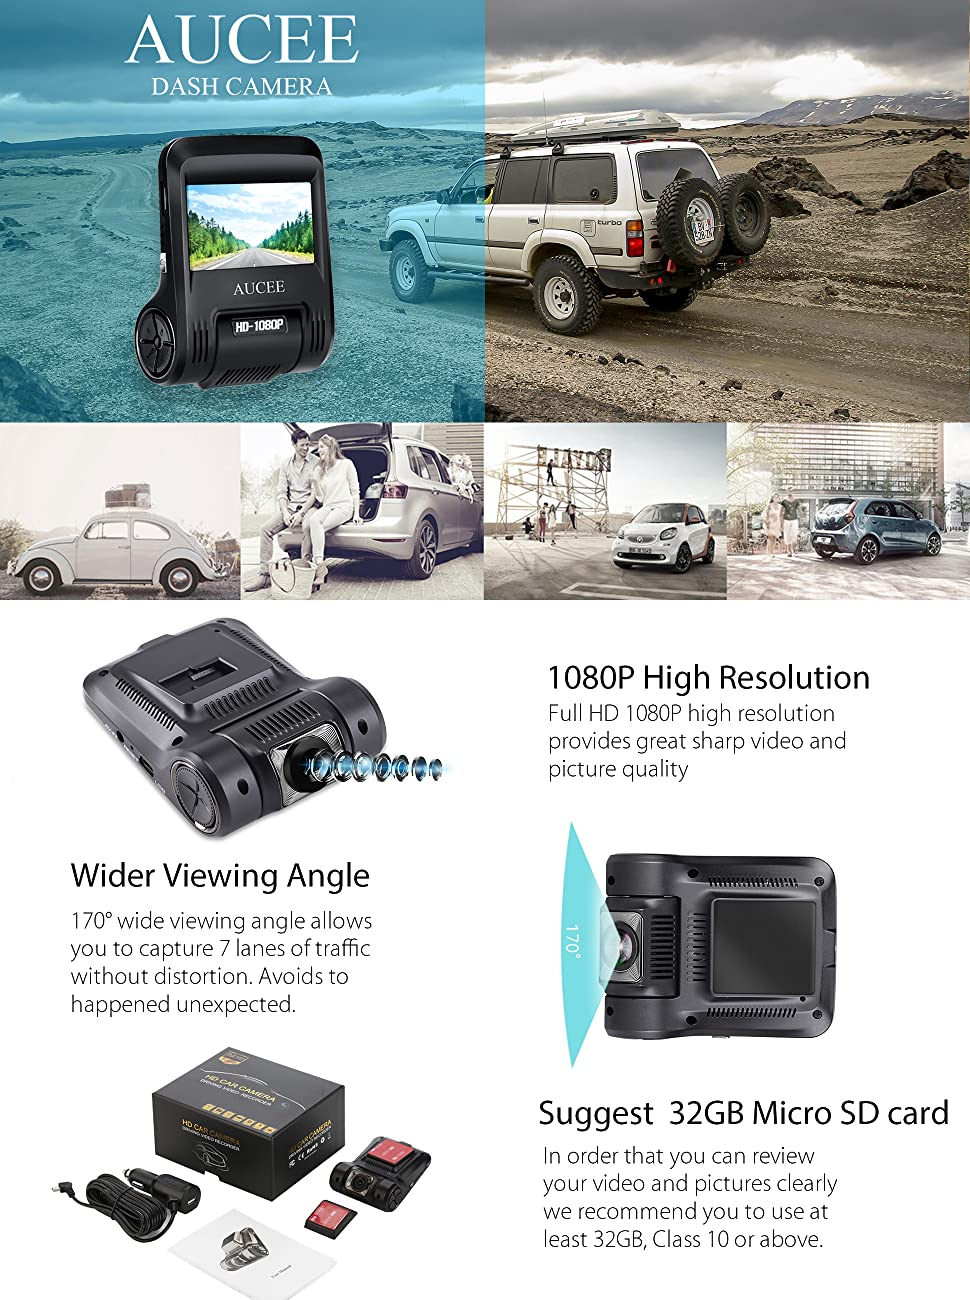 Aucee roader dash cam provides effective and reliable monitoring on all your car journeys with 1080p high resolution and 170 wide angle view